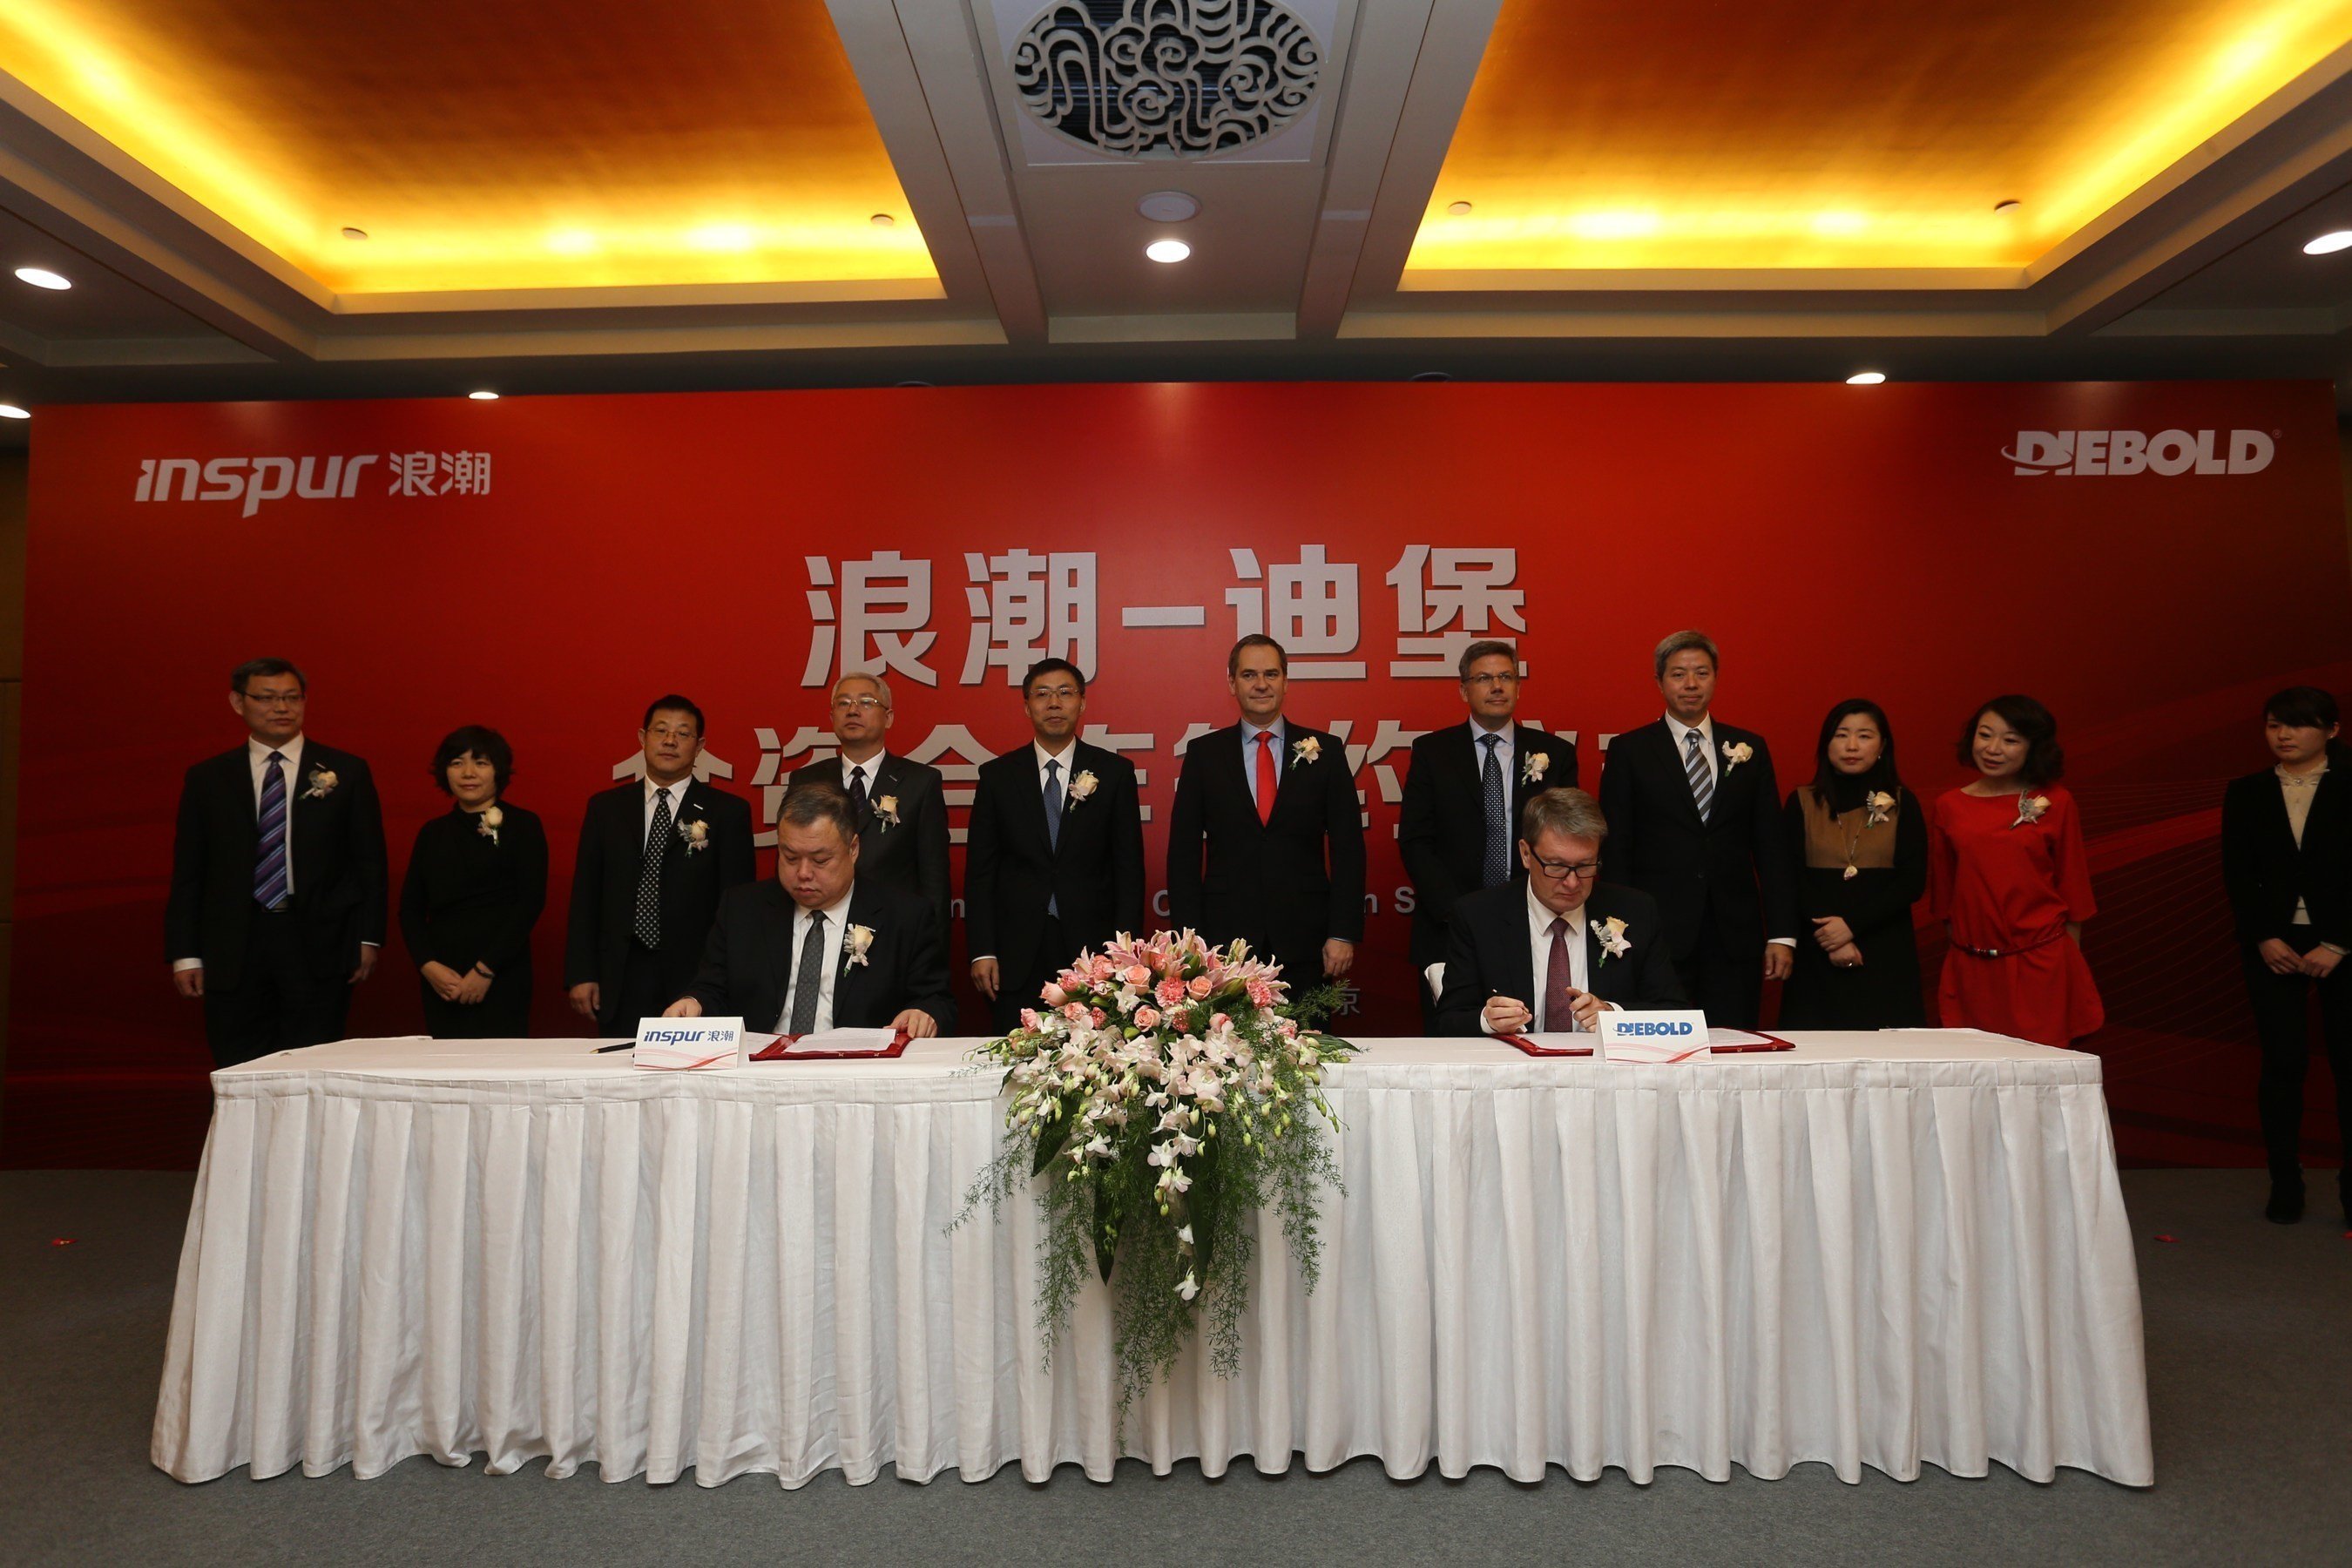 Inspur Group and Diebold Sign Joint Venture Cooperation Agreement